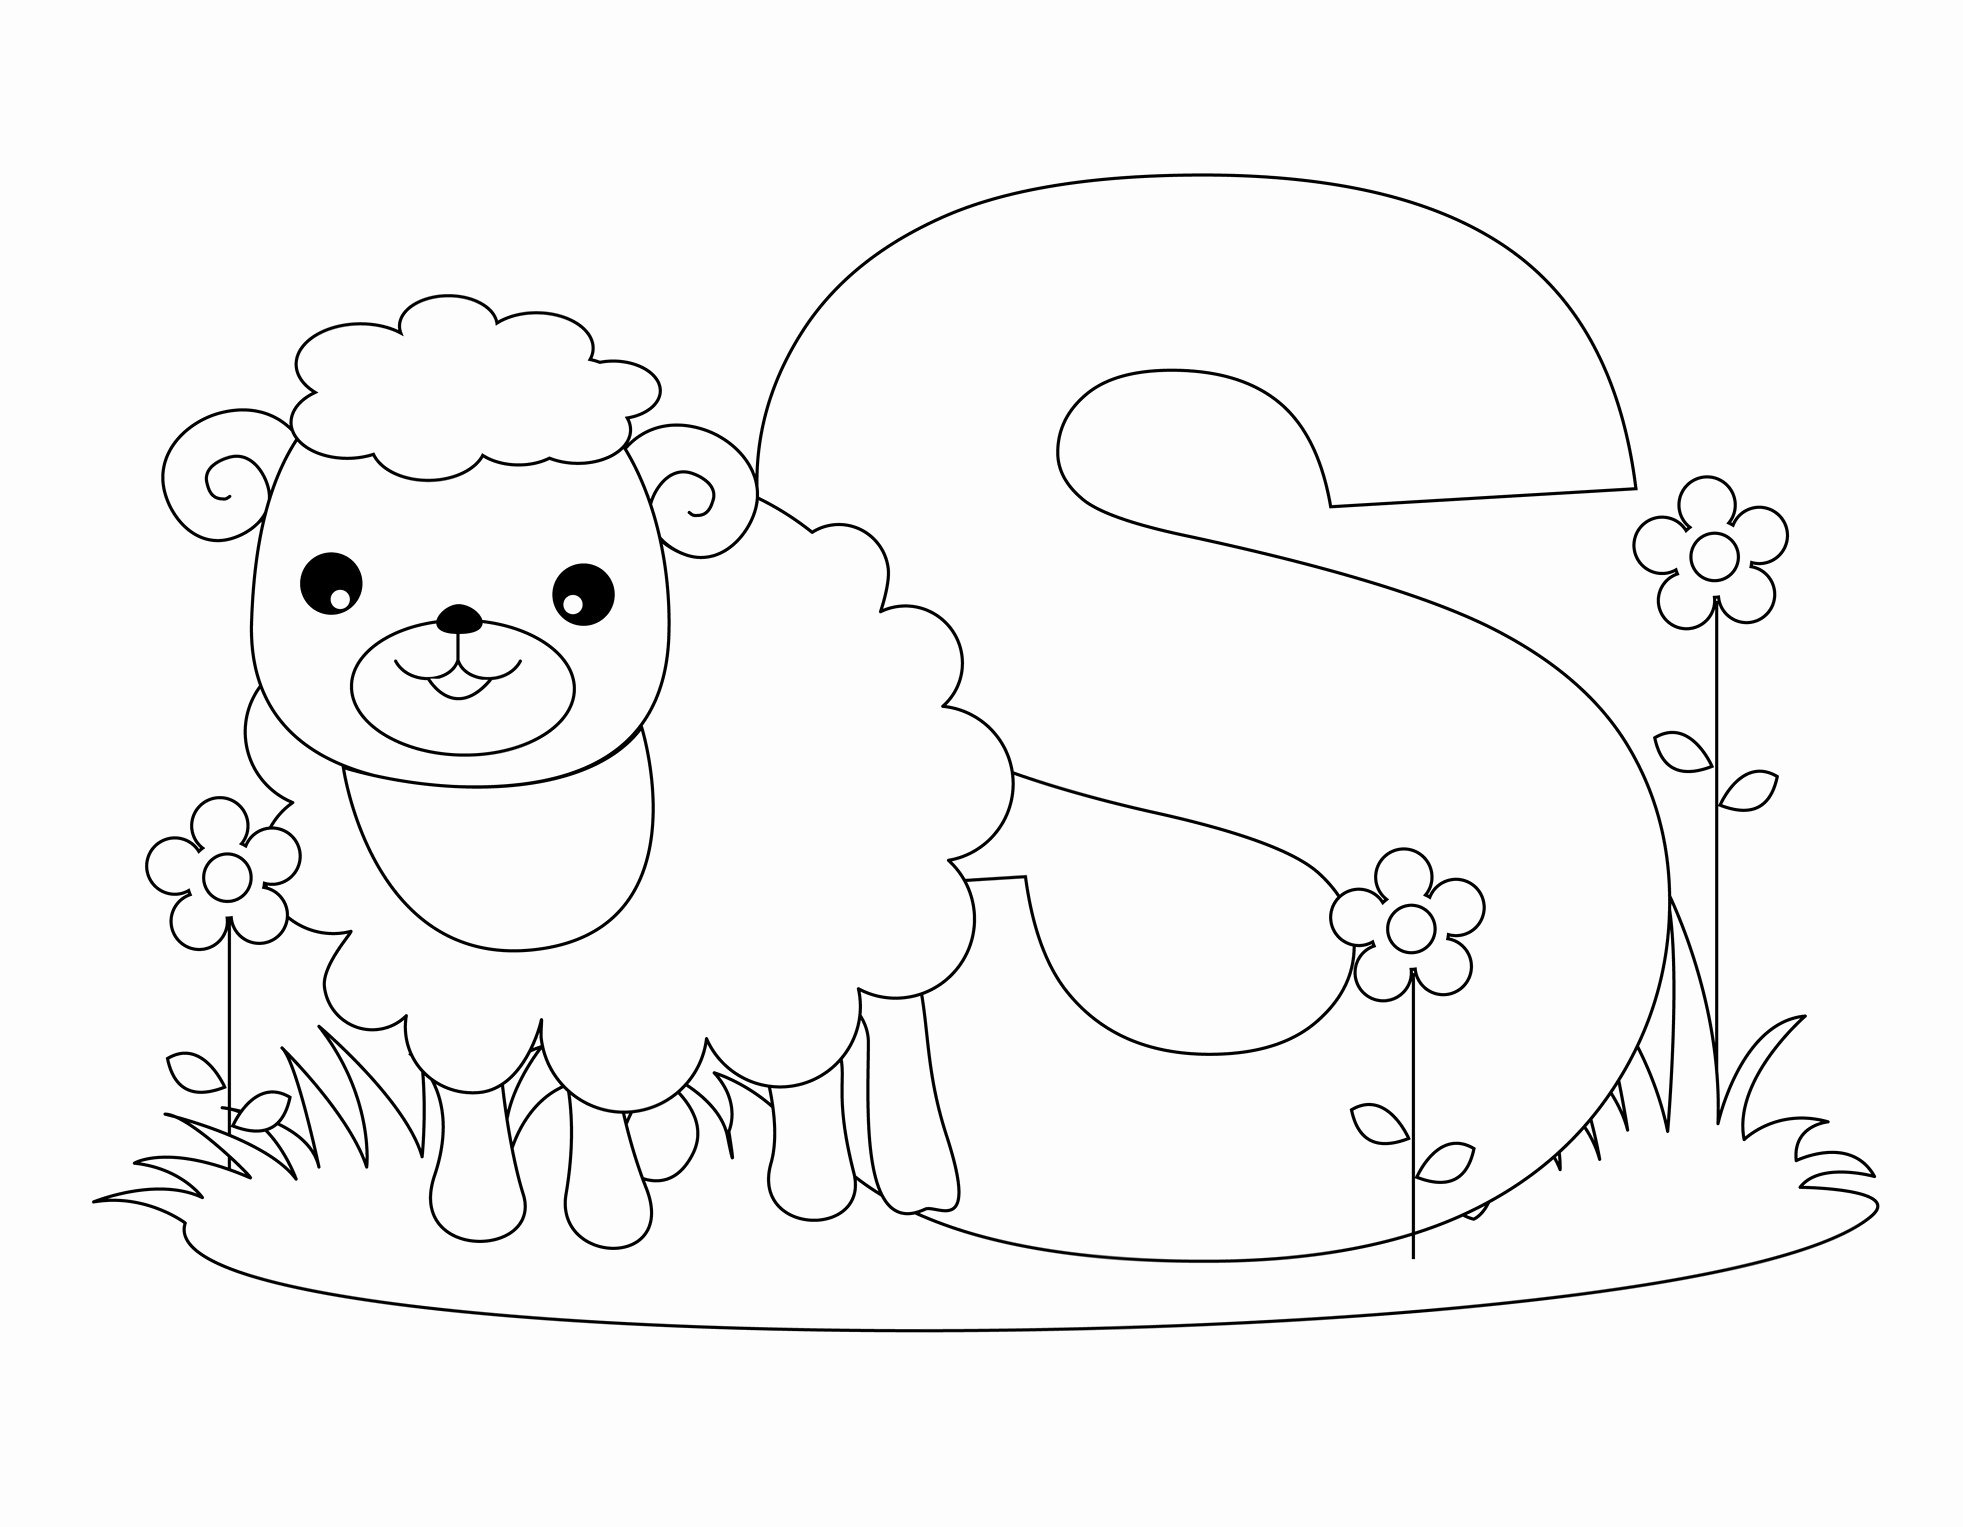 Alphabet Letters to Print Free Best Of Free Printable Alphabet Coloring Pages for Kids Best